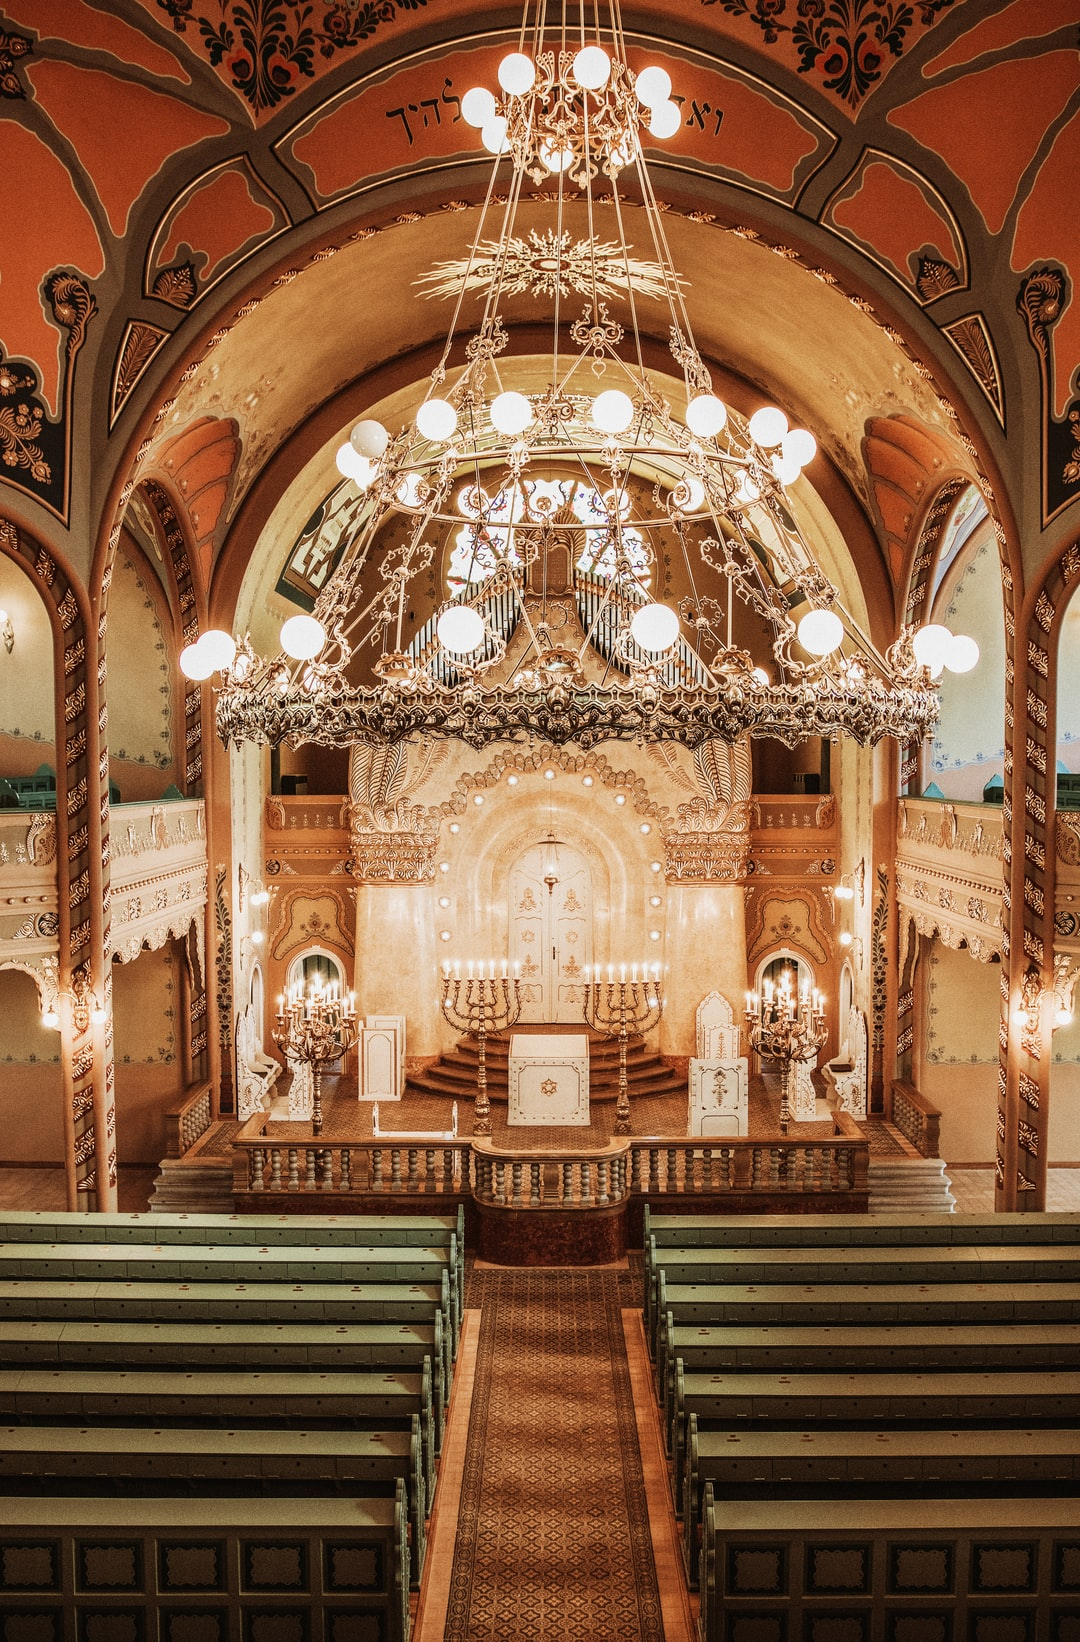 The Jakab and Komor Square Synagogue in Subotica is a Hungarian Art Nouveau synagogue in Subotica, Serbia. It is the second largest synagogue in Europe